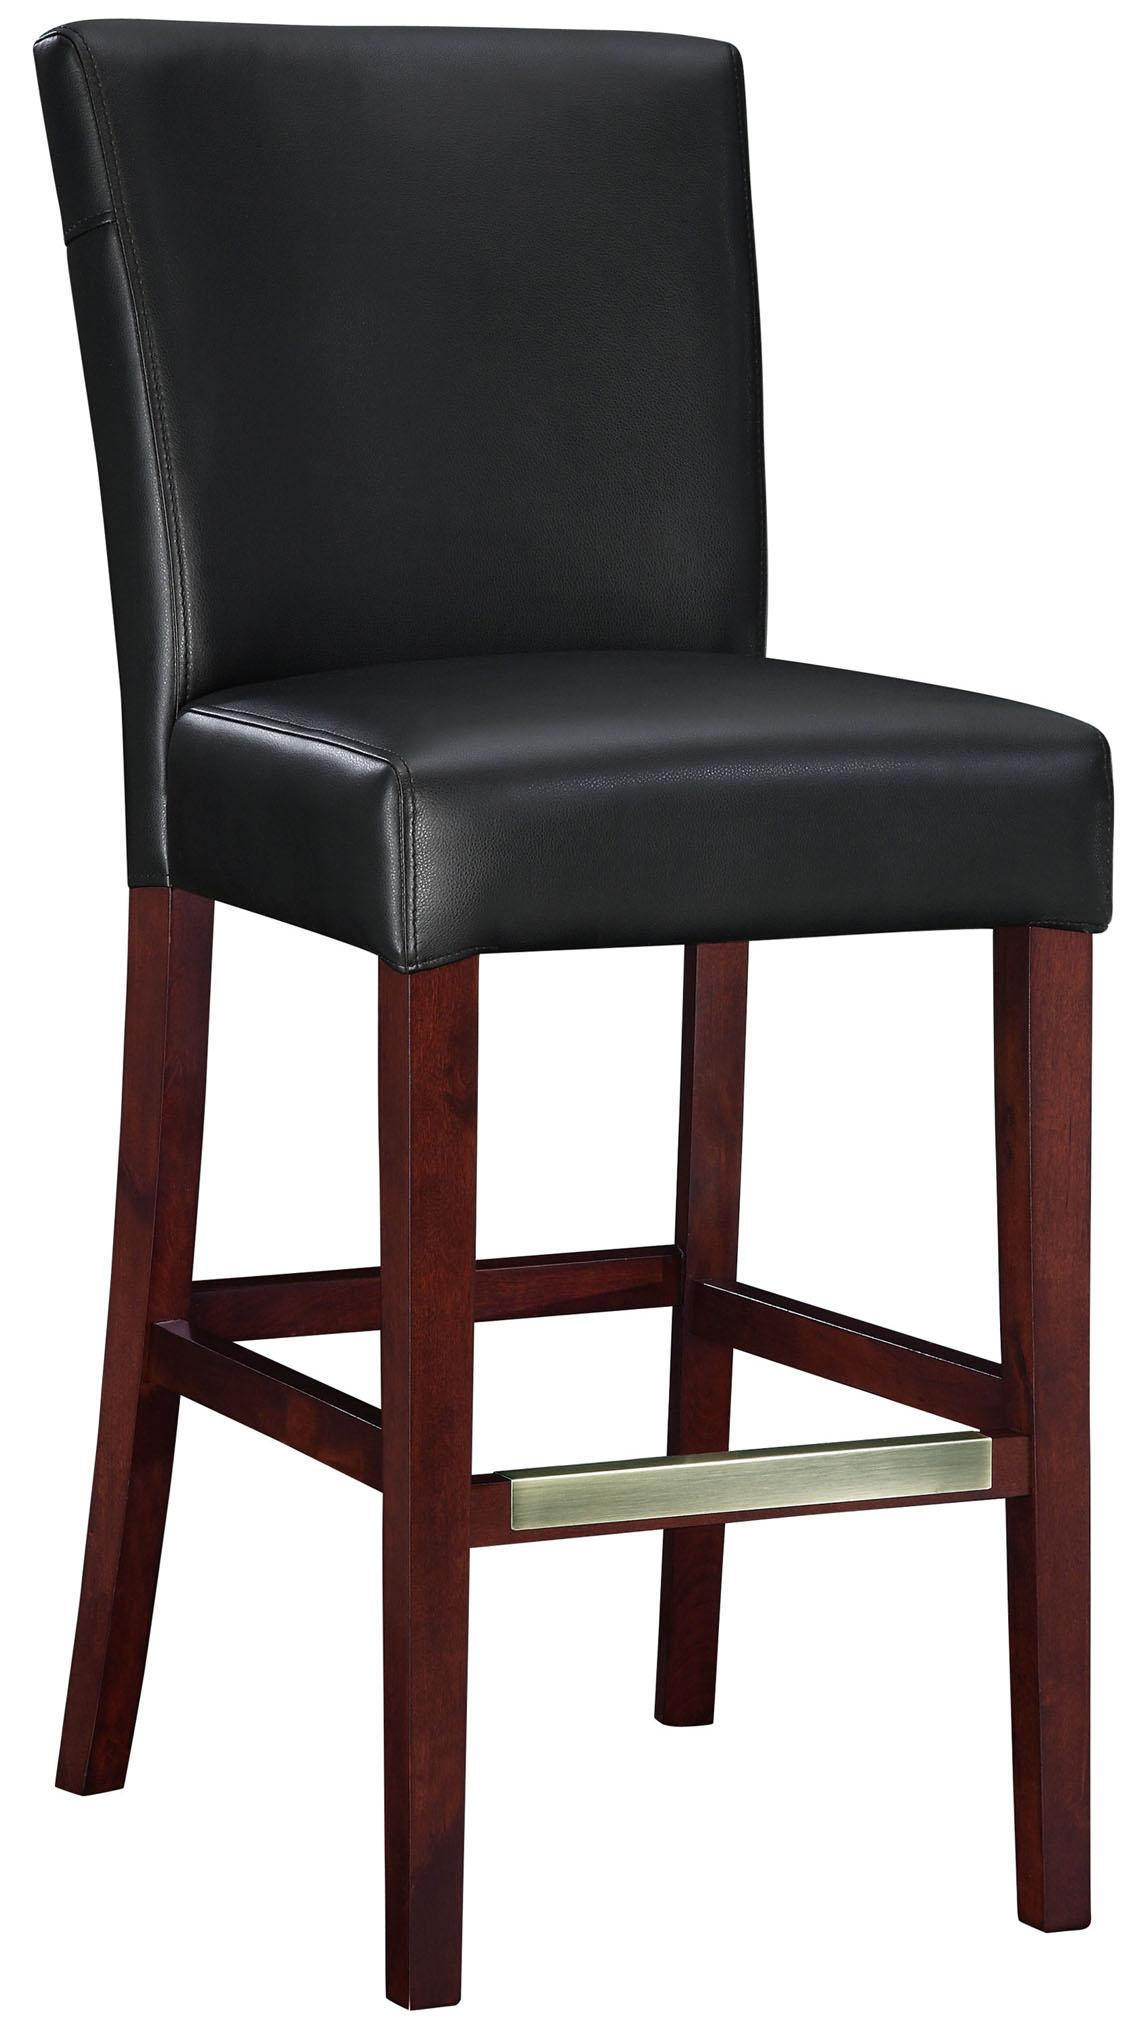 Powell Bar Stools & Tables Black Bonded Leather Bar Stool - Item Number: 273-847